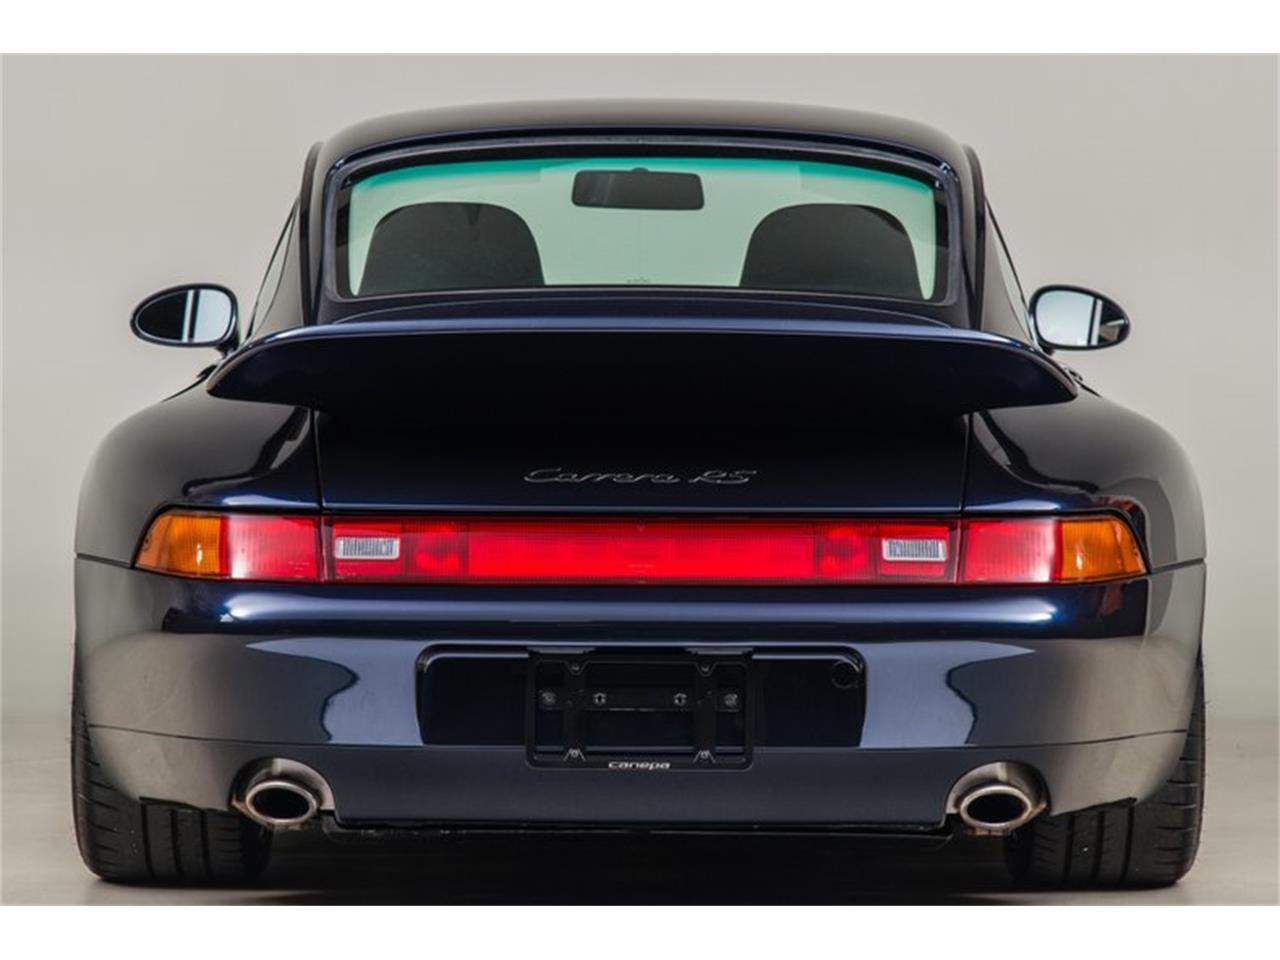 Large Picture of '96 Porsche 911 located in California Auction Vehicle - QMX6